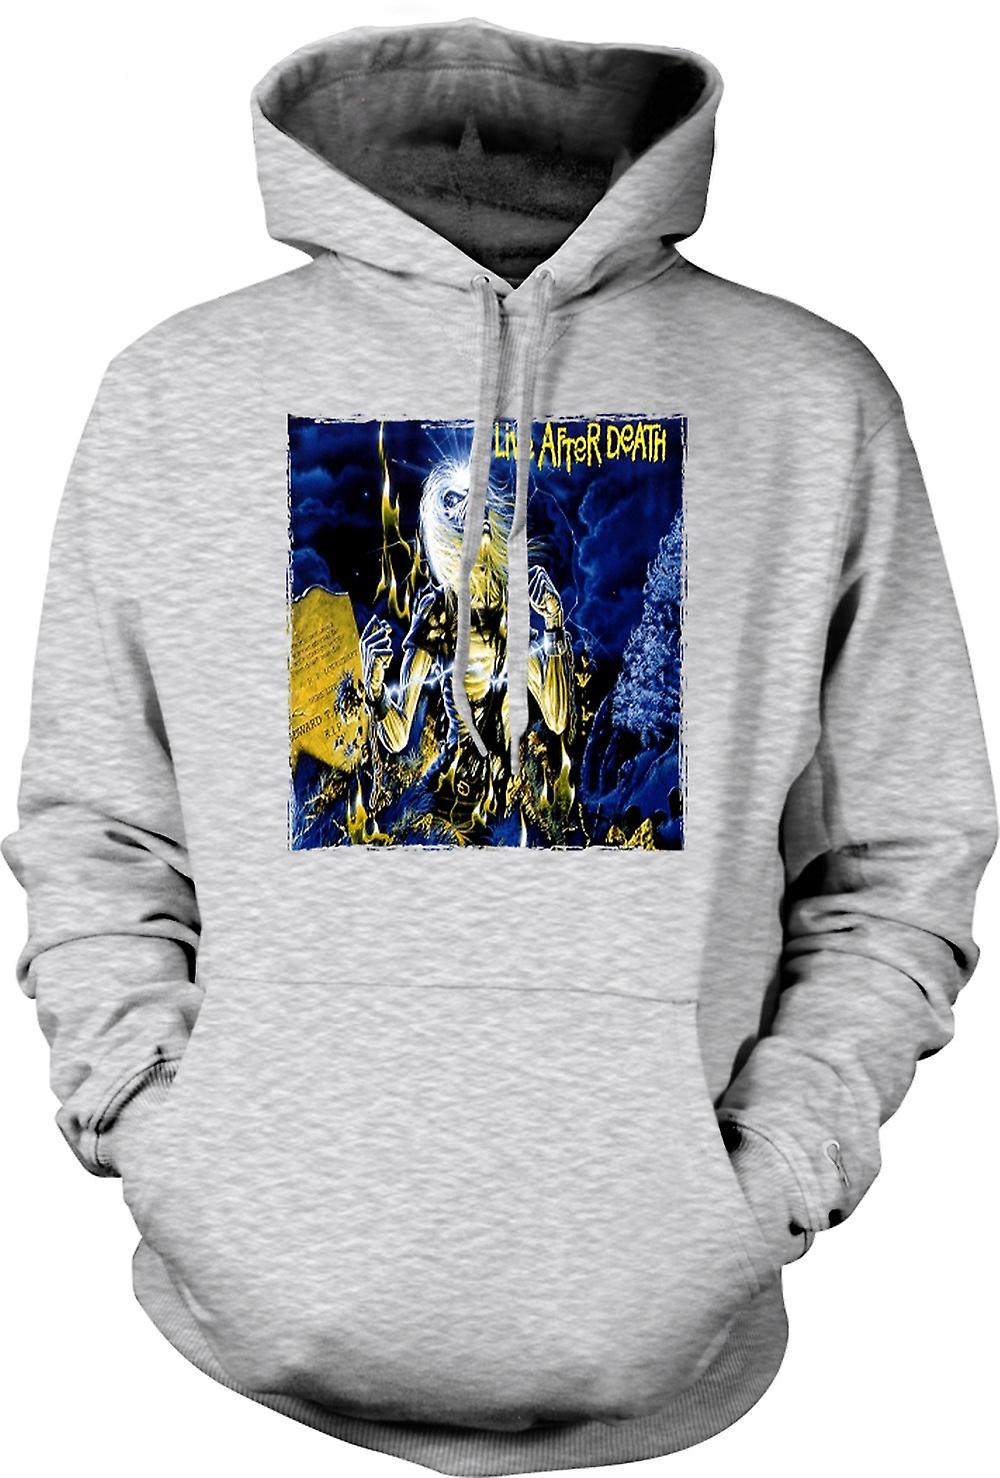 Mens Hoodie - Iron Maiden - Album Art - Live After Death